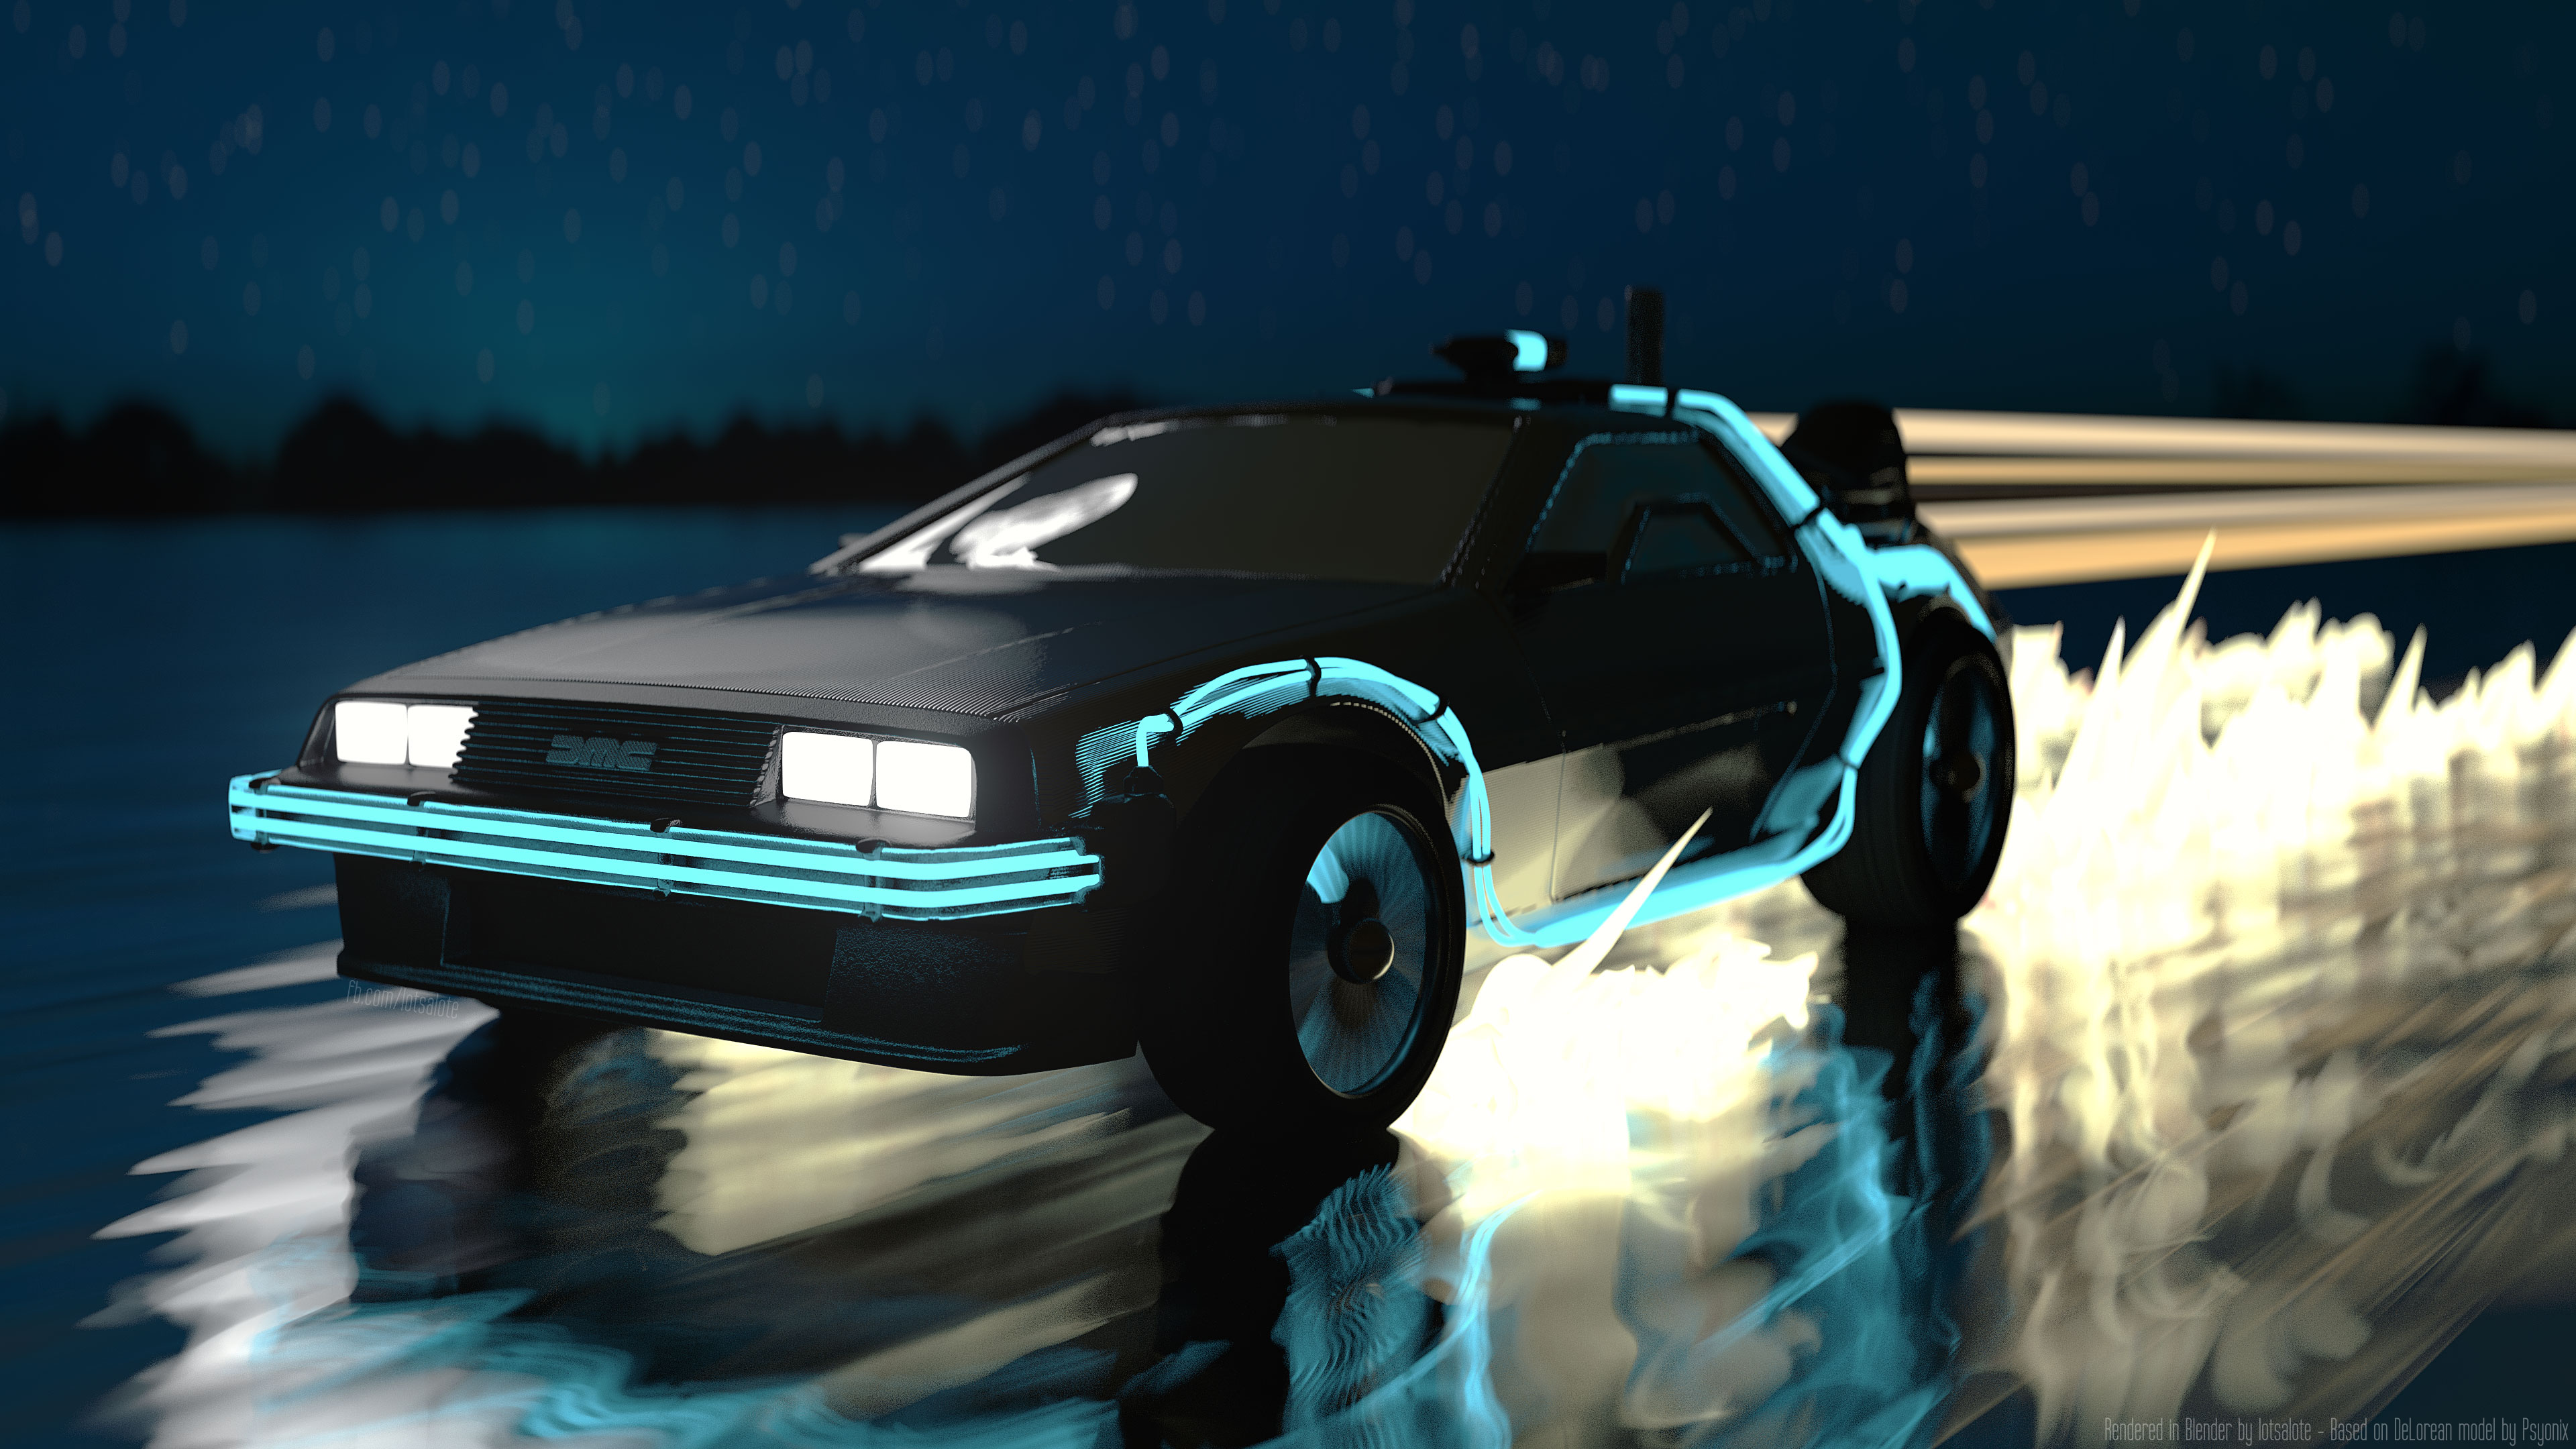 Delorean Wallpapers and Background Images   stmednet 3840x2160